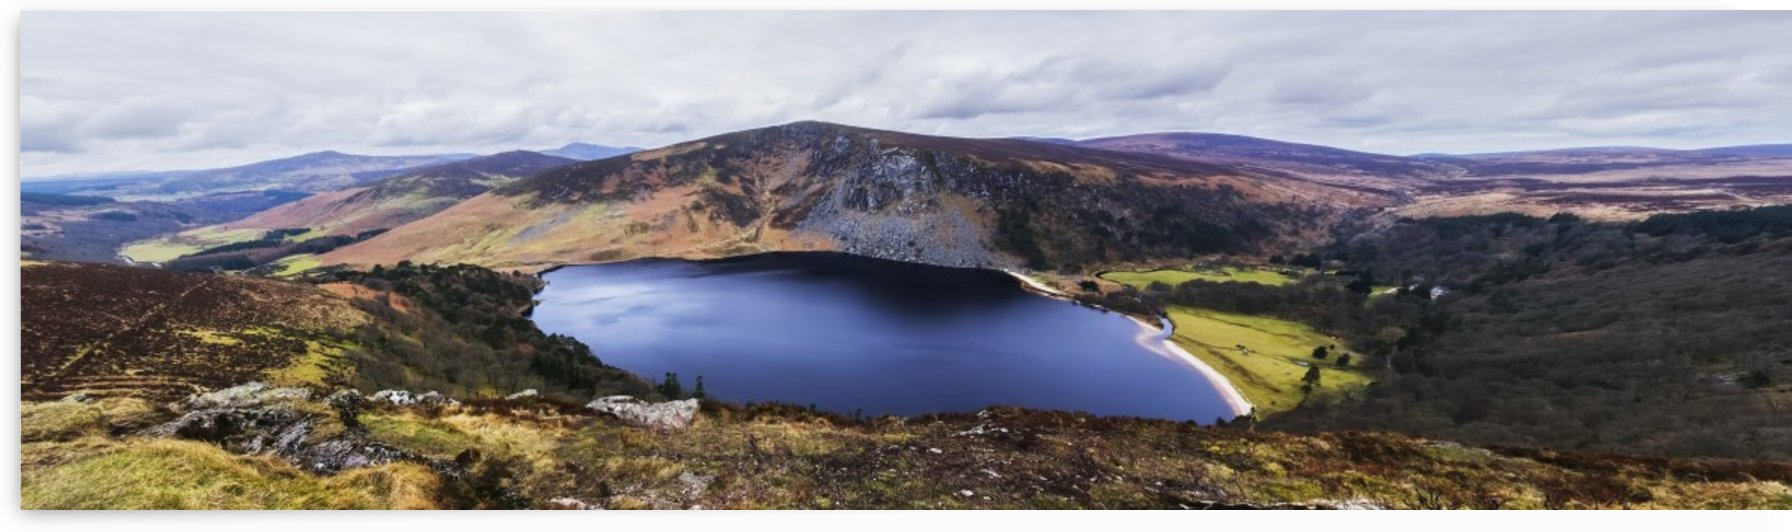 Panoramic view of stunning Guinness Lake; Wickow County, Ireland by PacificStock